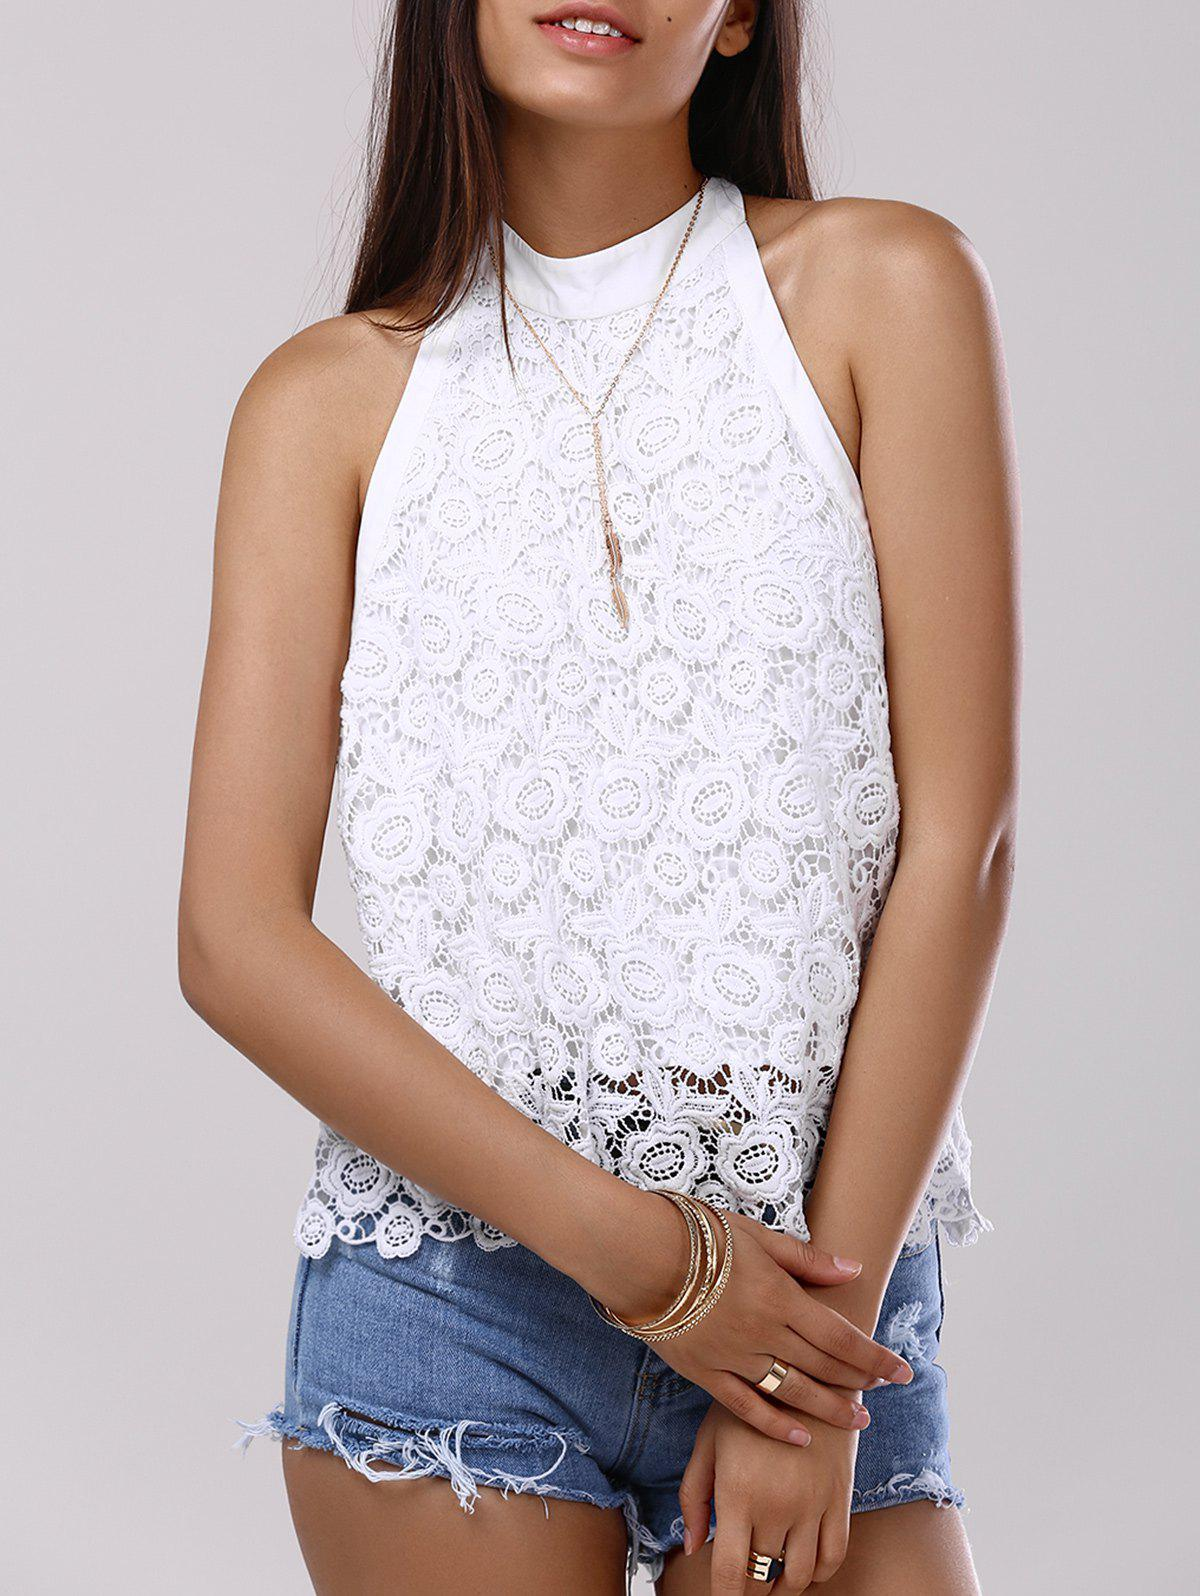 Fashionable Backless Halter Bowknot Lace Tank Top For Women - WHITE XL